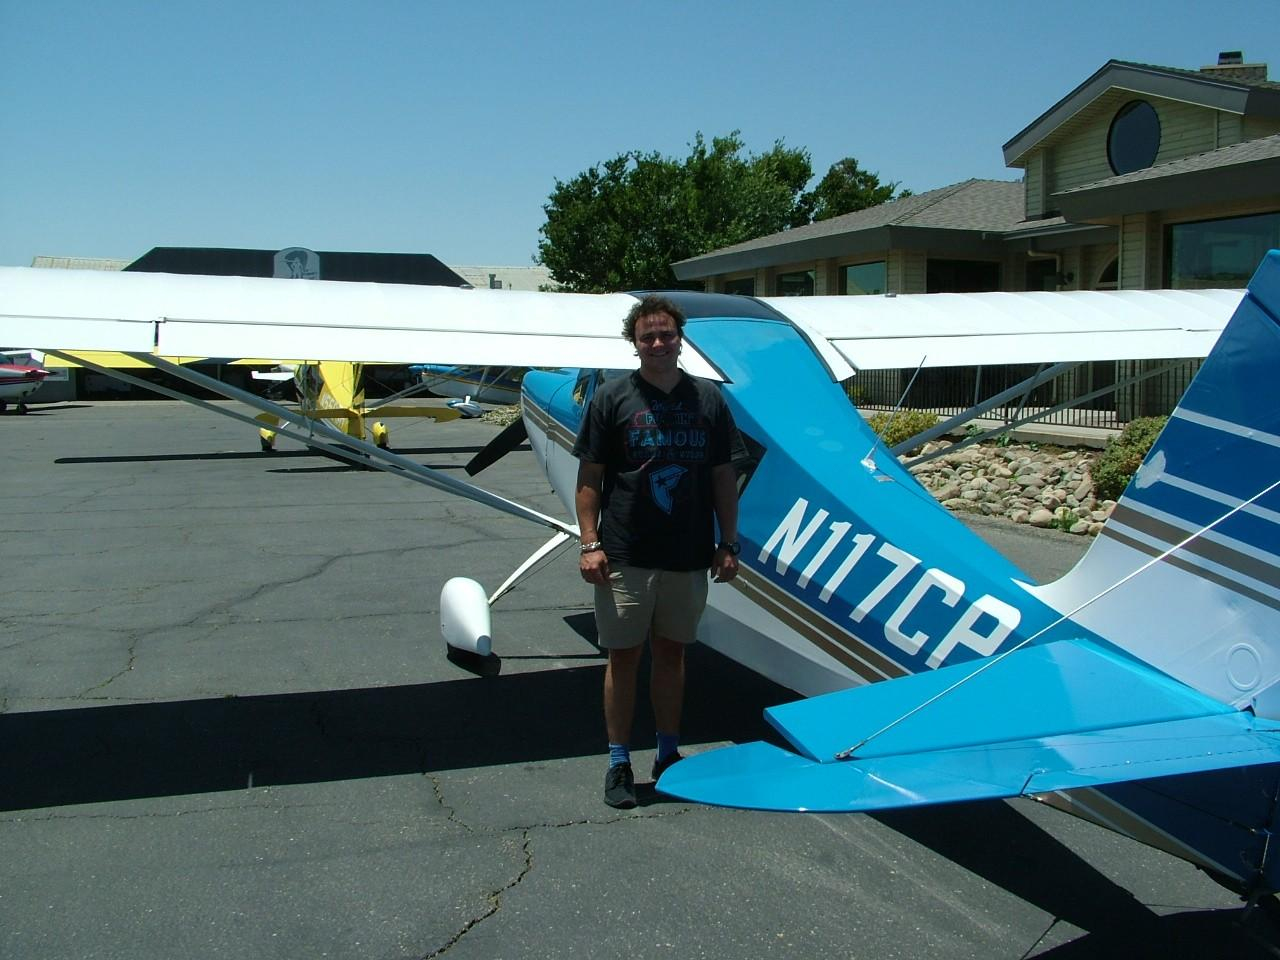 Tailwheel Endorsement - Alex Fitzvohn